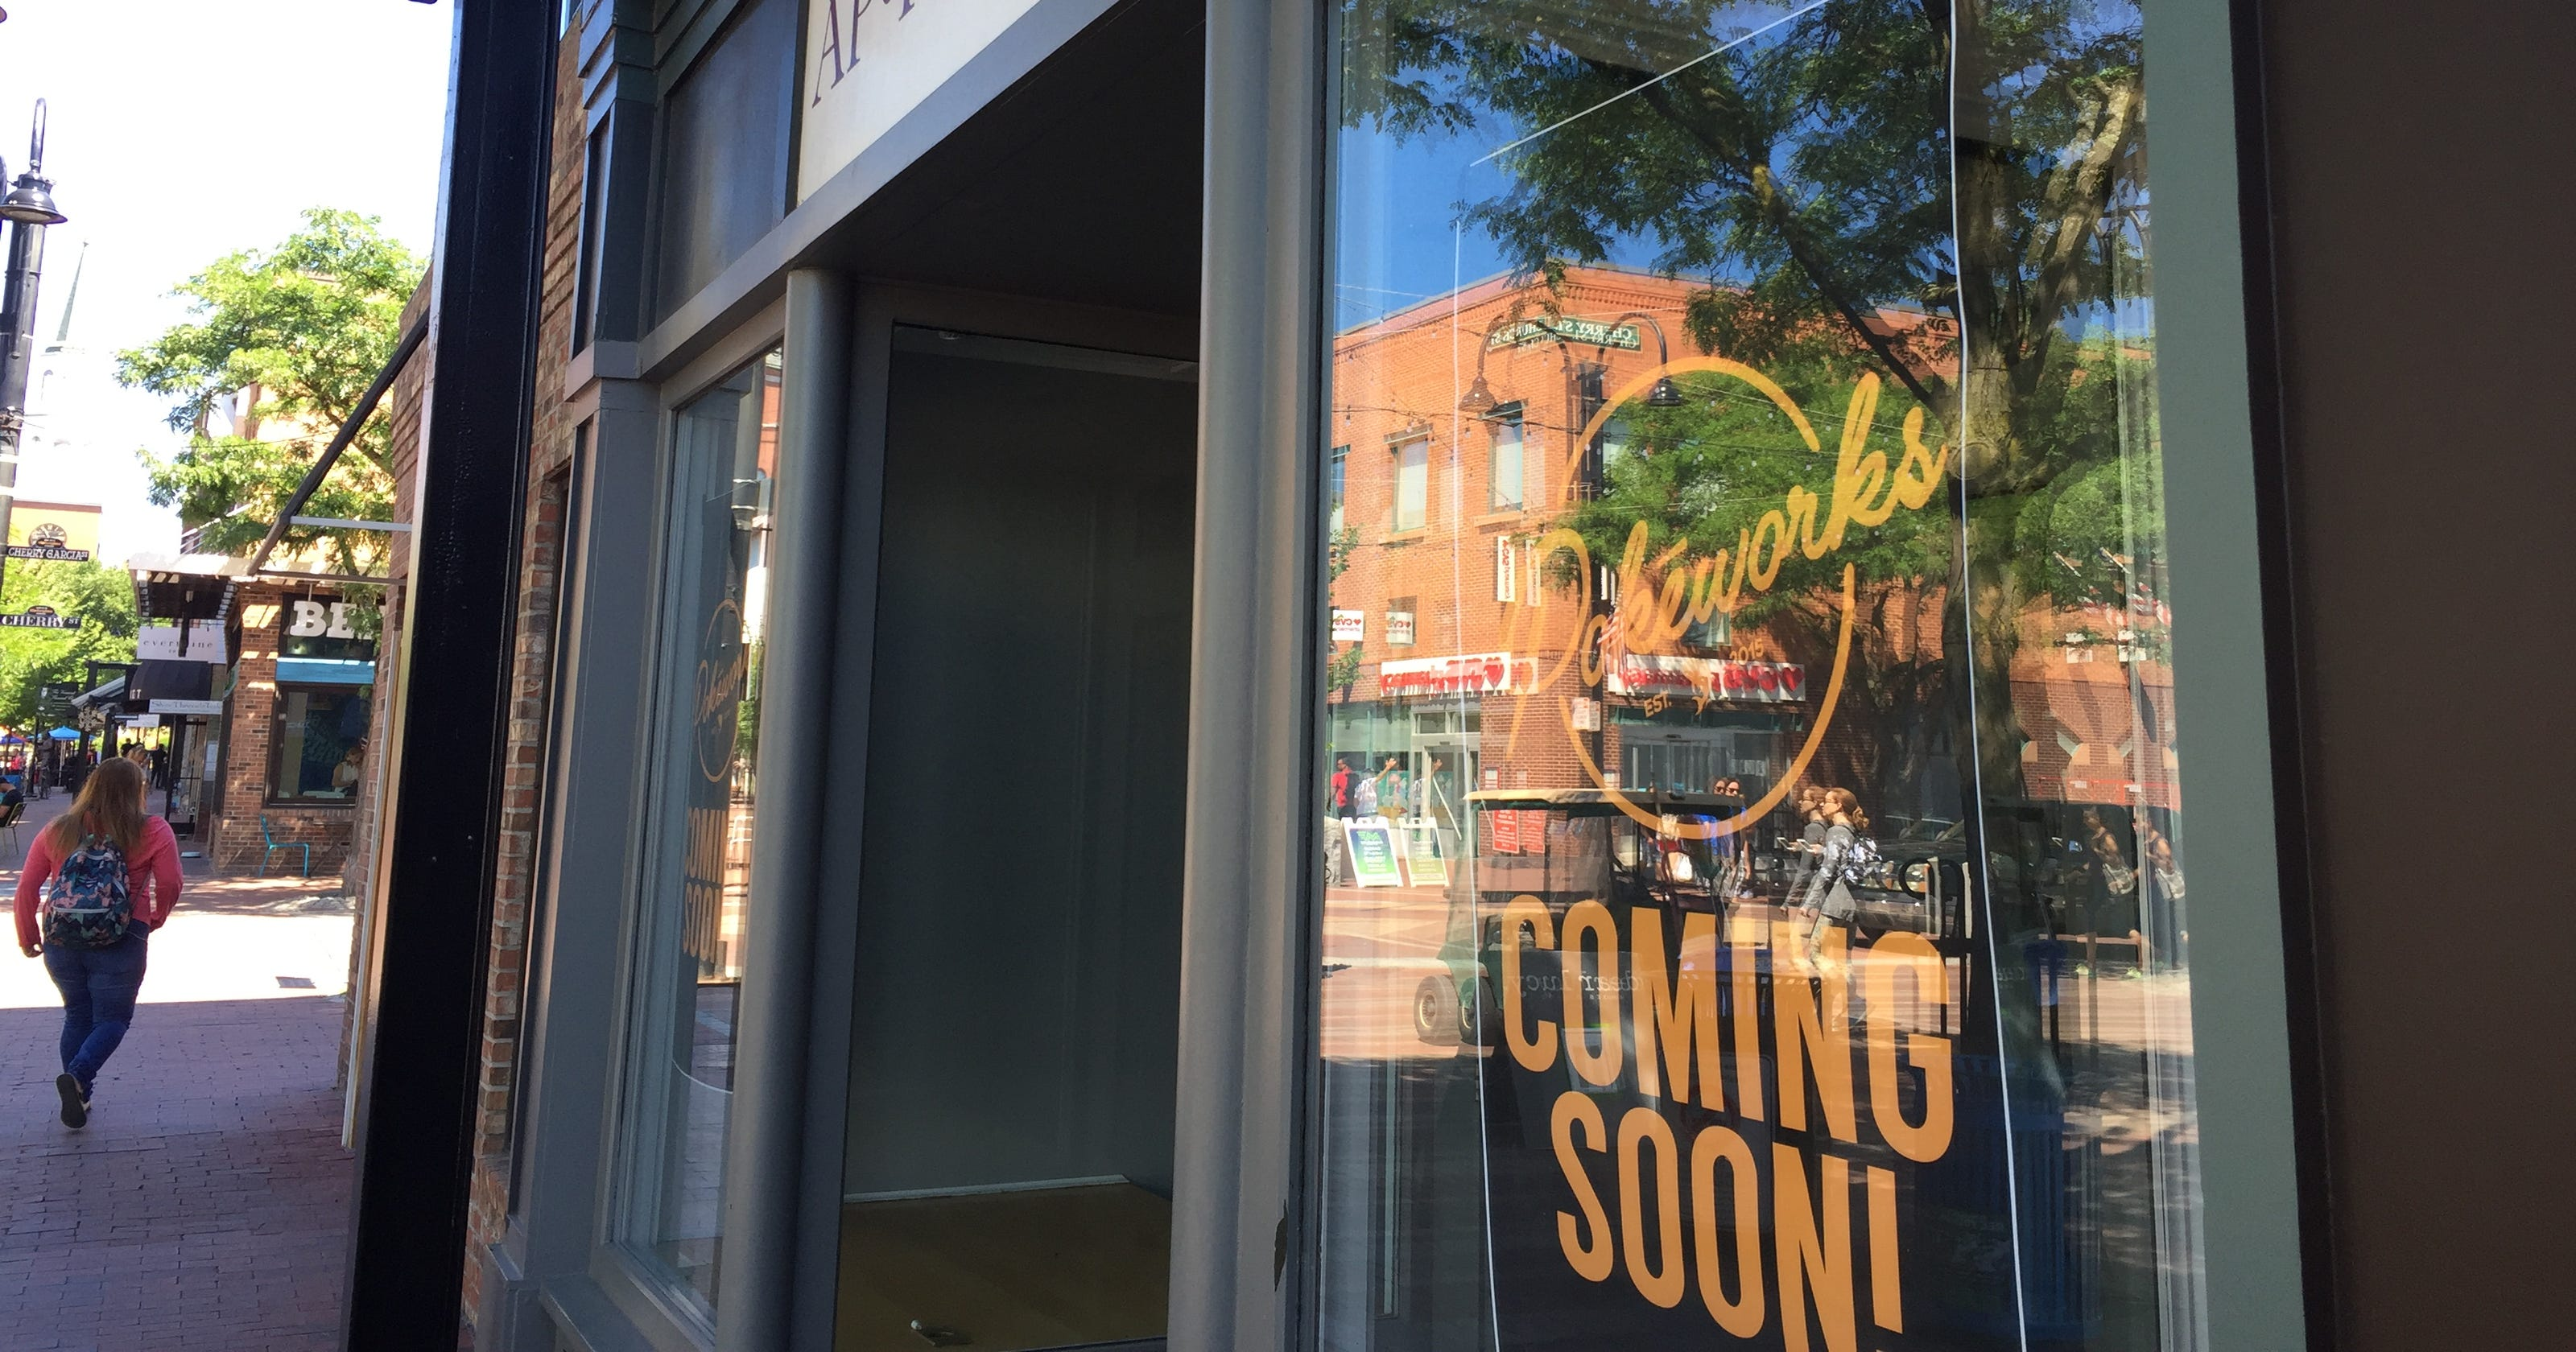 Pokeworks Restaurant Chain Coming To Church Street